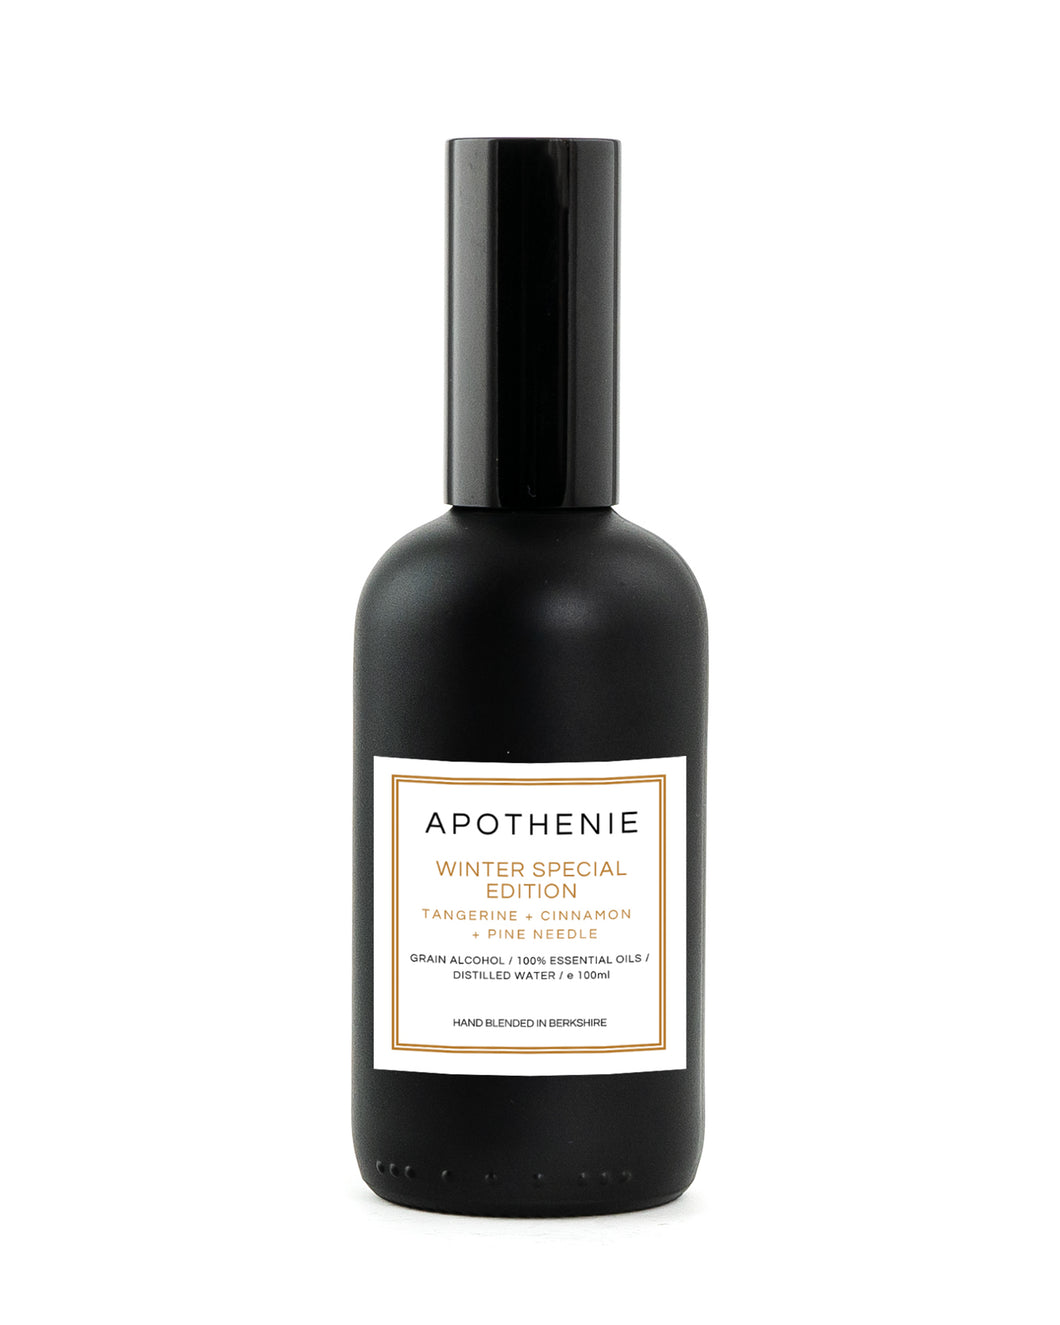 12.00 Winter Special Edition freeshipping - Apothenie UK